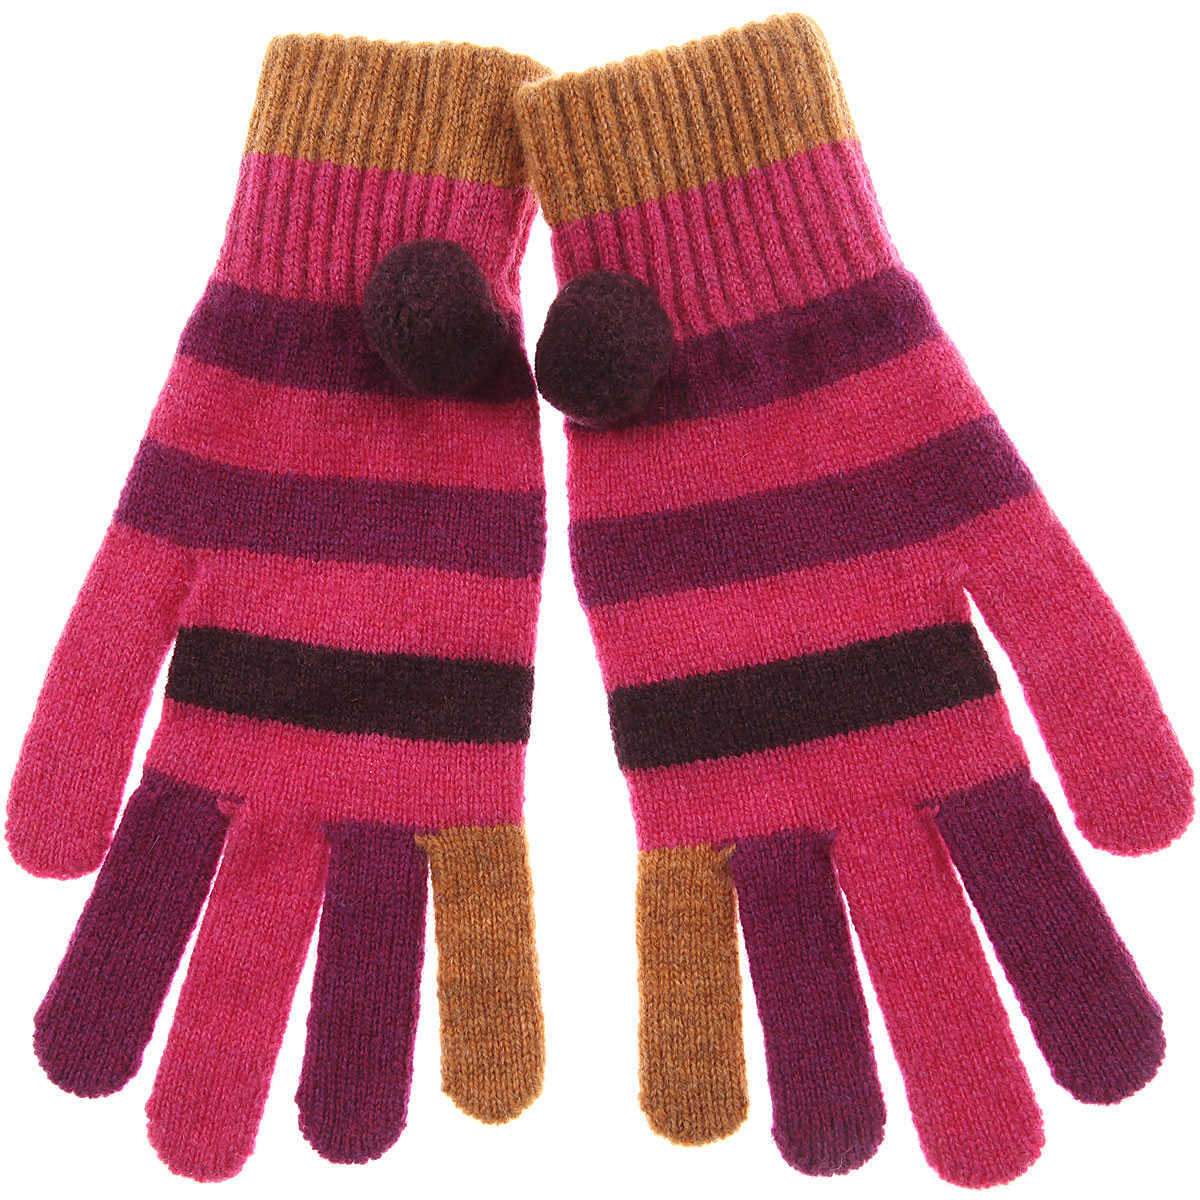 Paul Smith Gloves for Women On Sale Pink DK - GOOFASH - Womens GLOVES